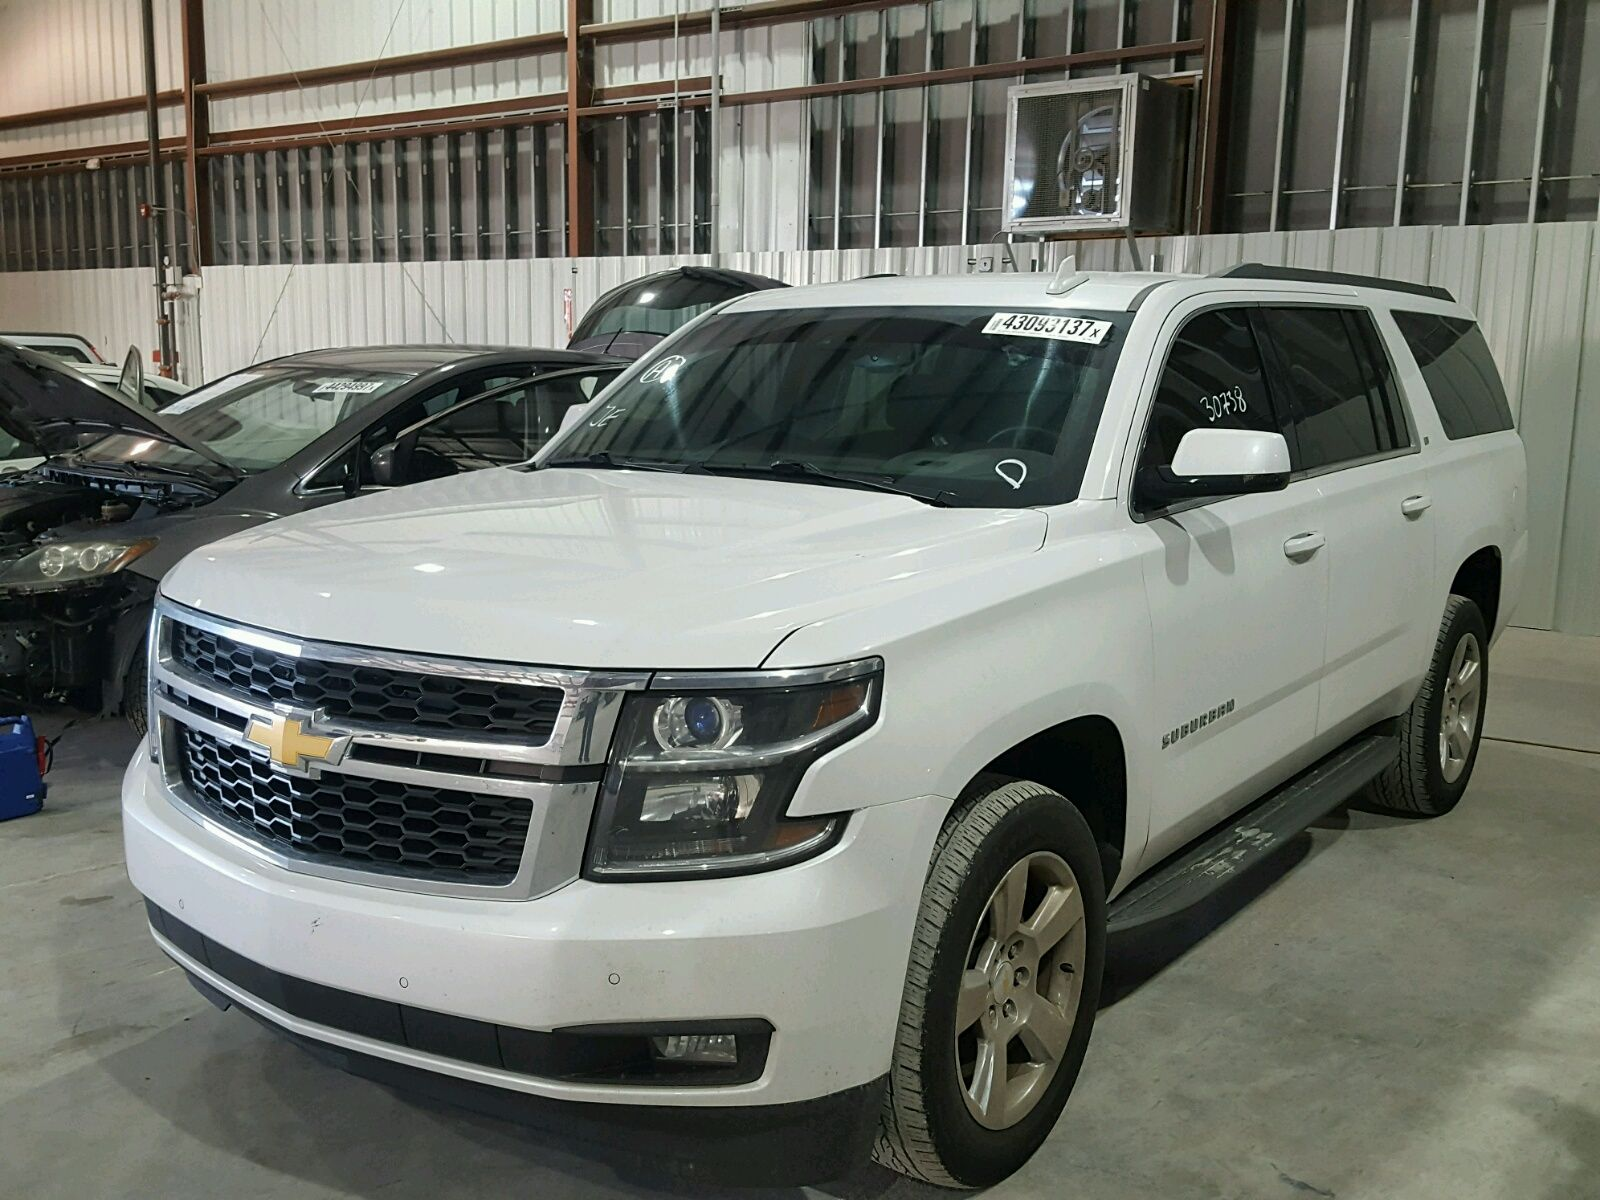 Salvage 2016 Chevrolet Suburban Lt salvage forsale denali TAHOE